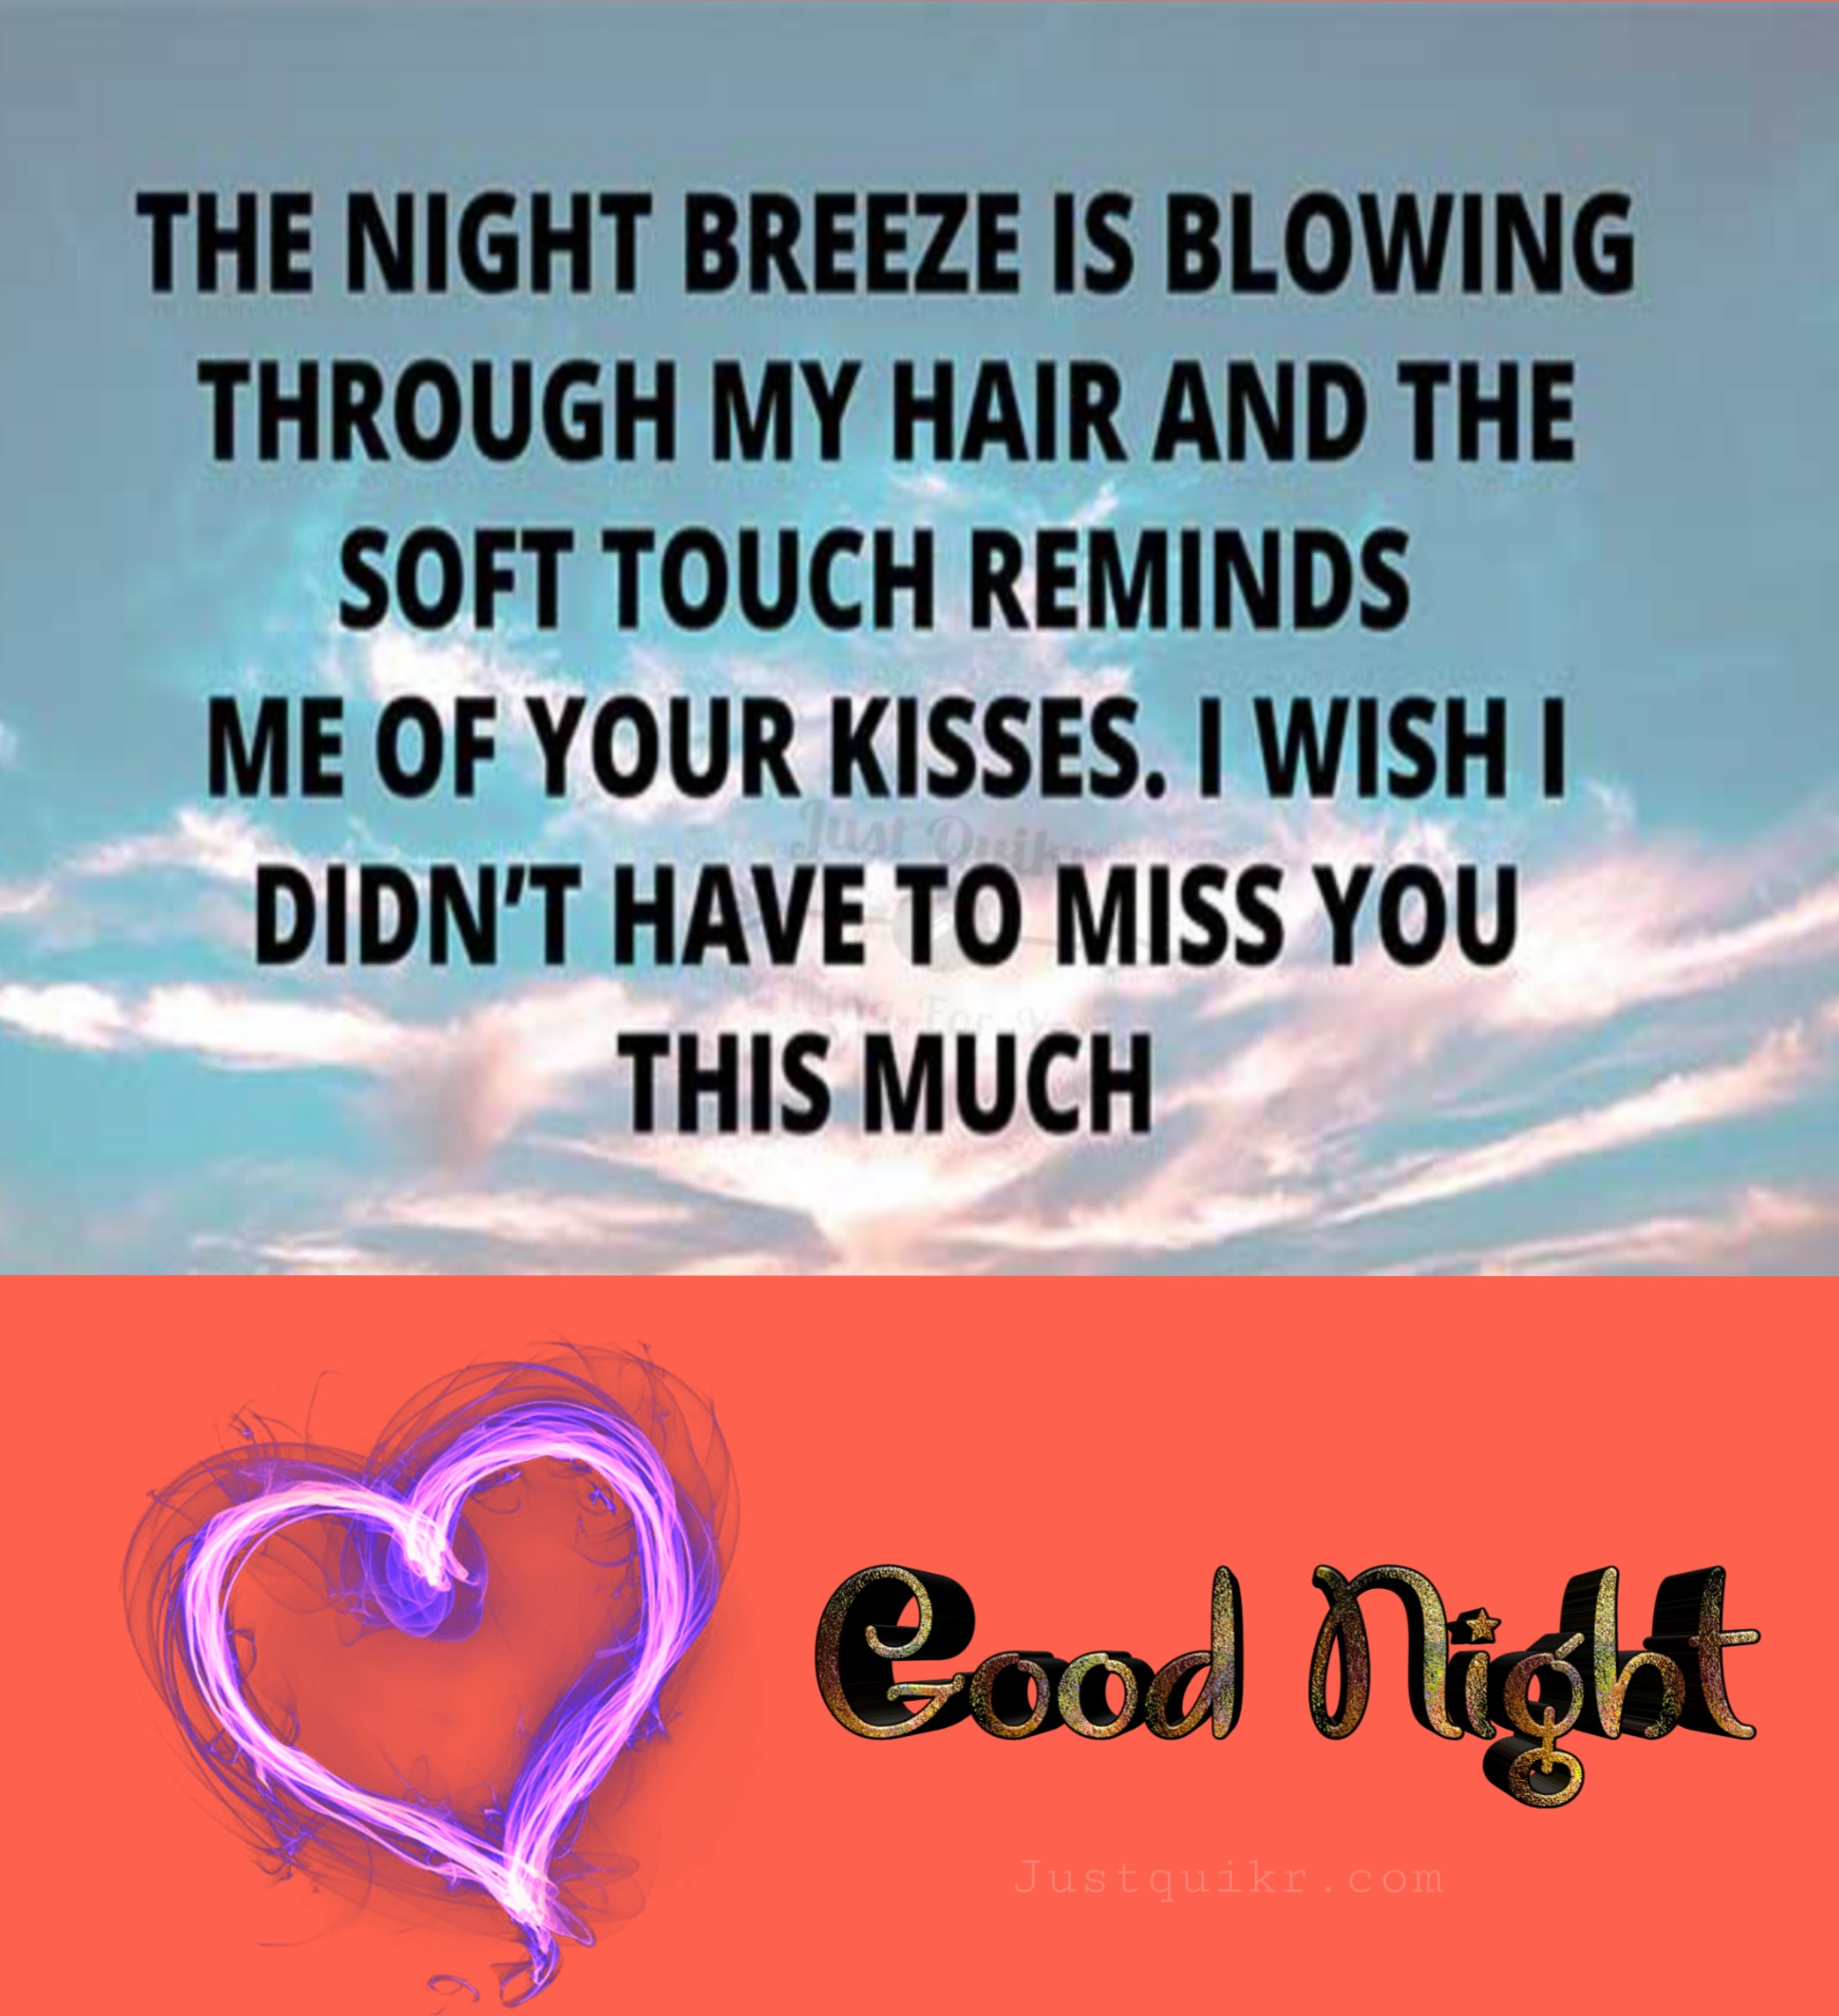 Good Night HD Pics Images For Her With Love